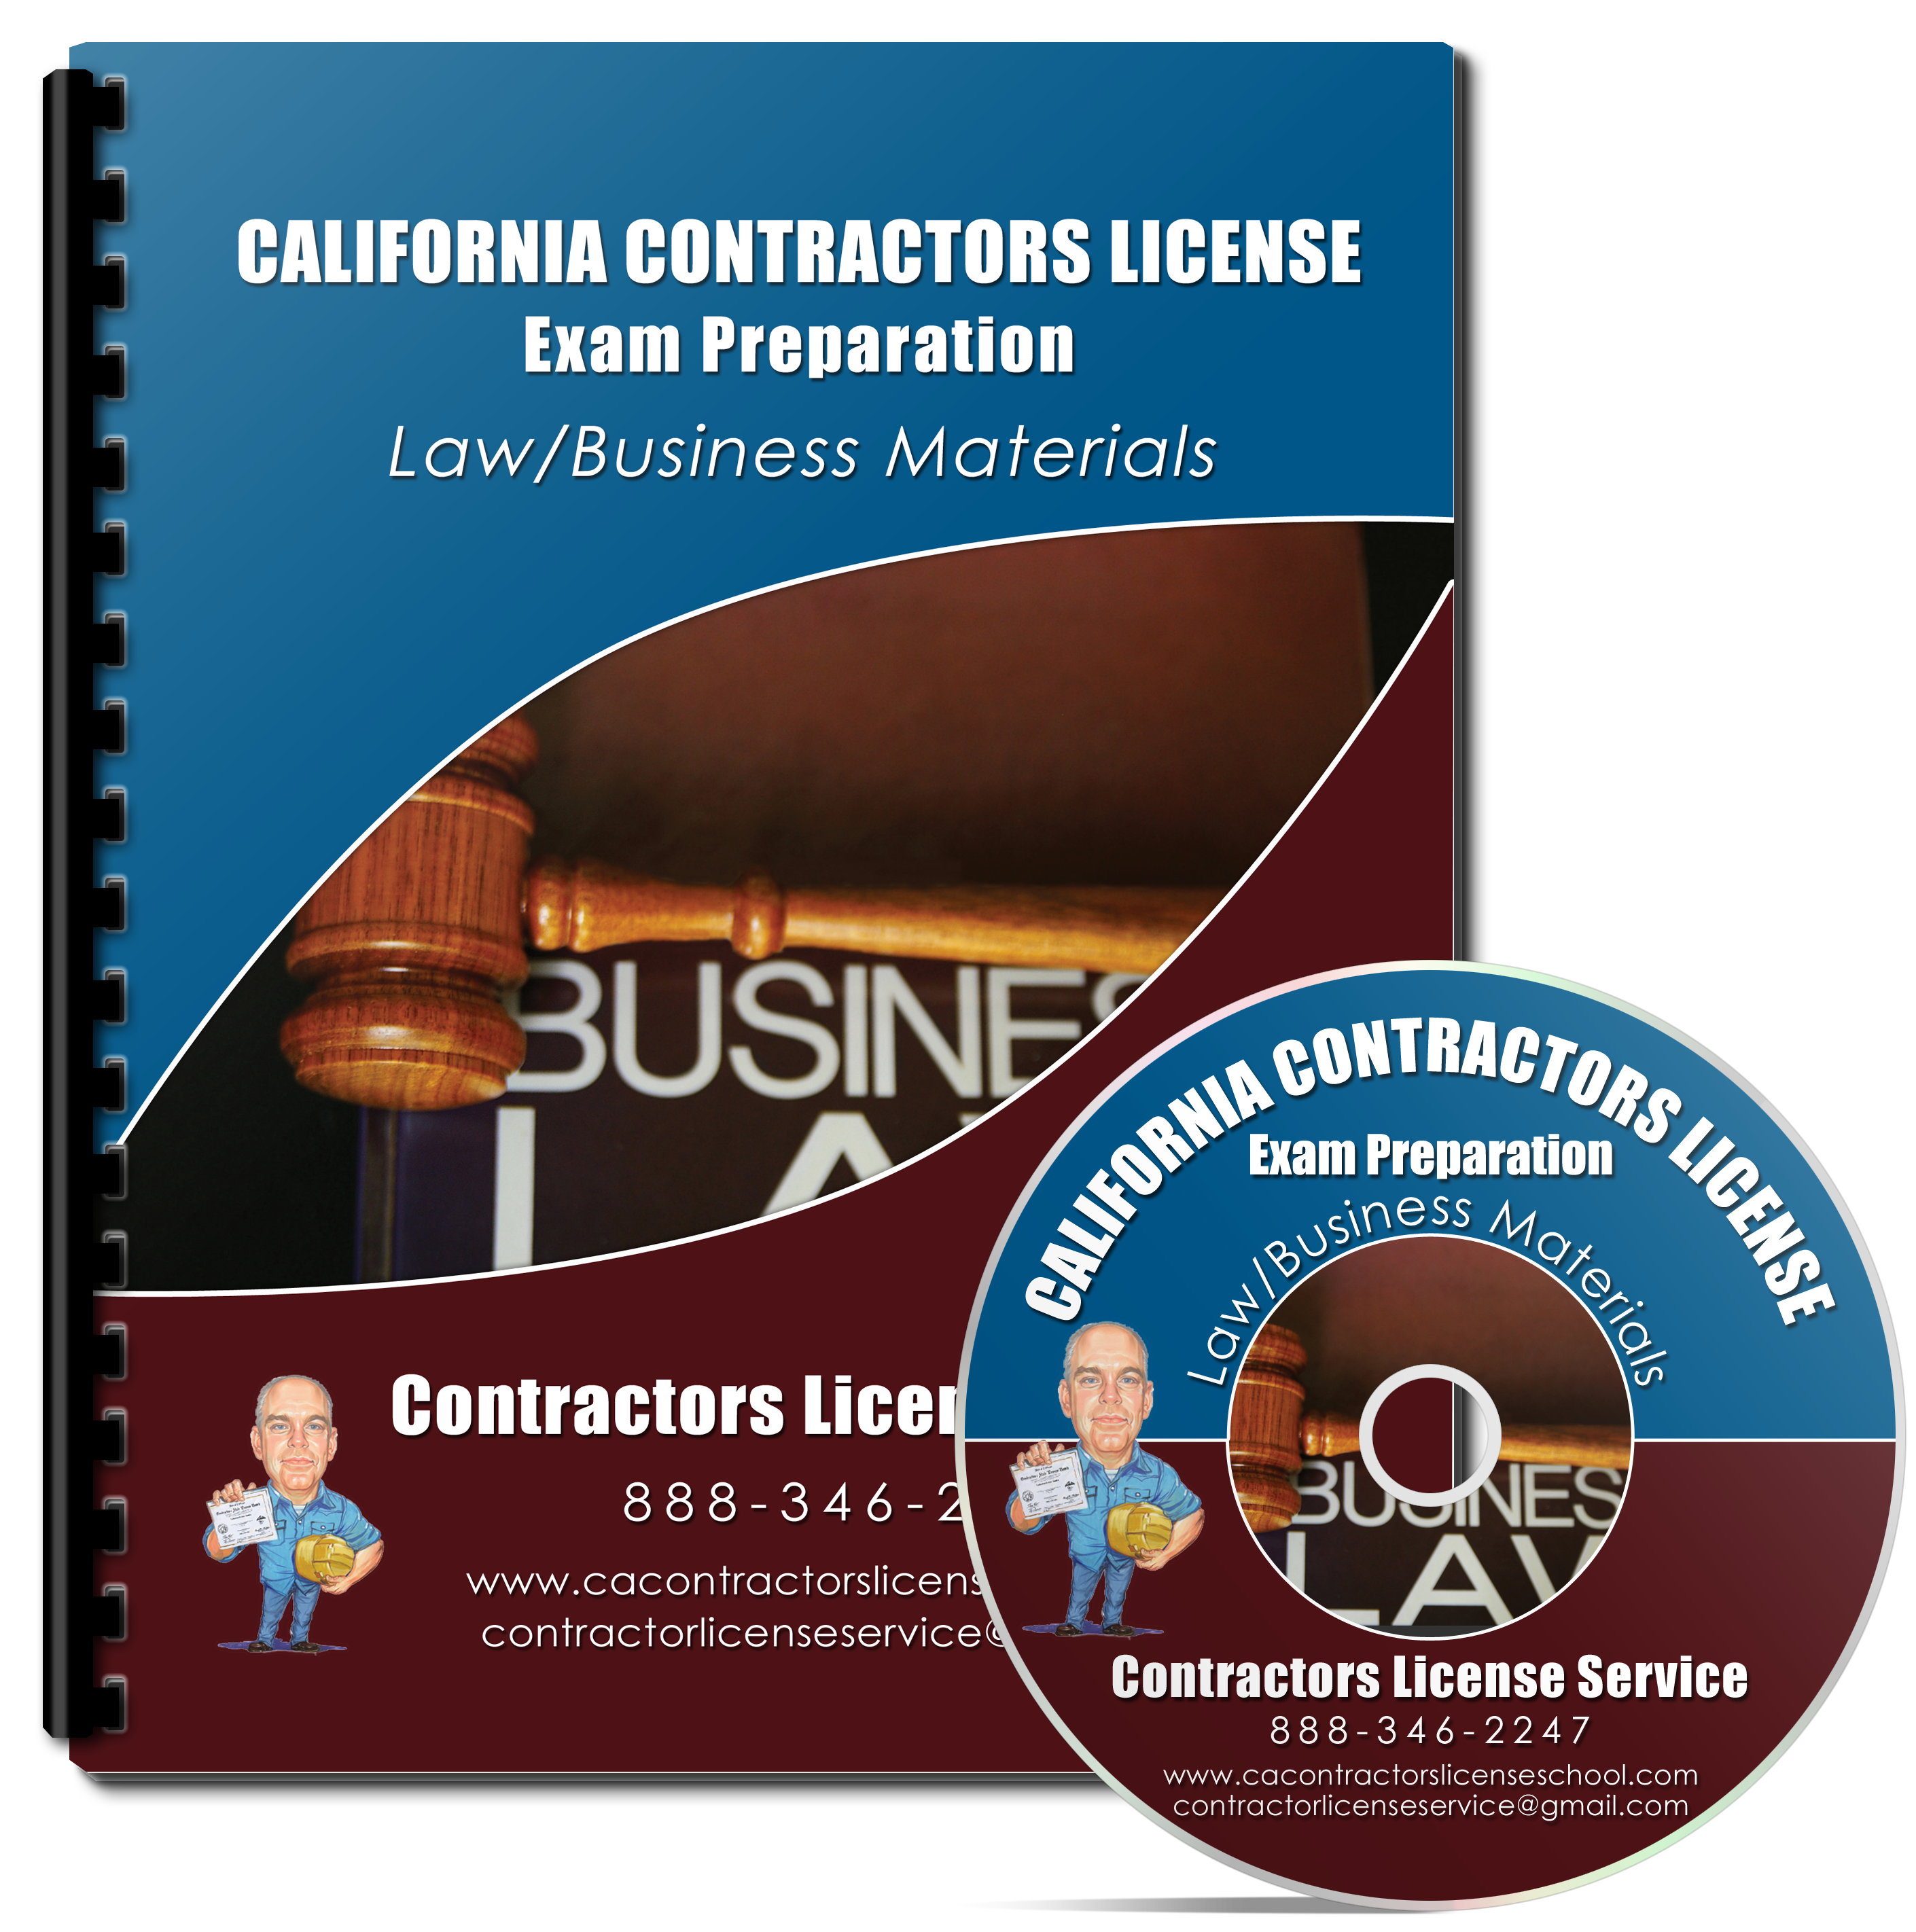 Contractors License Exam Law & Business Kit